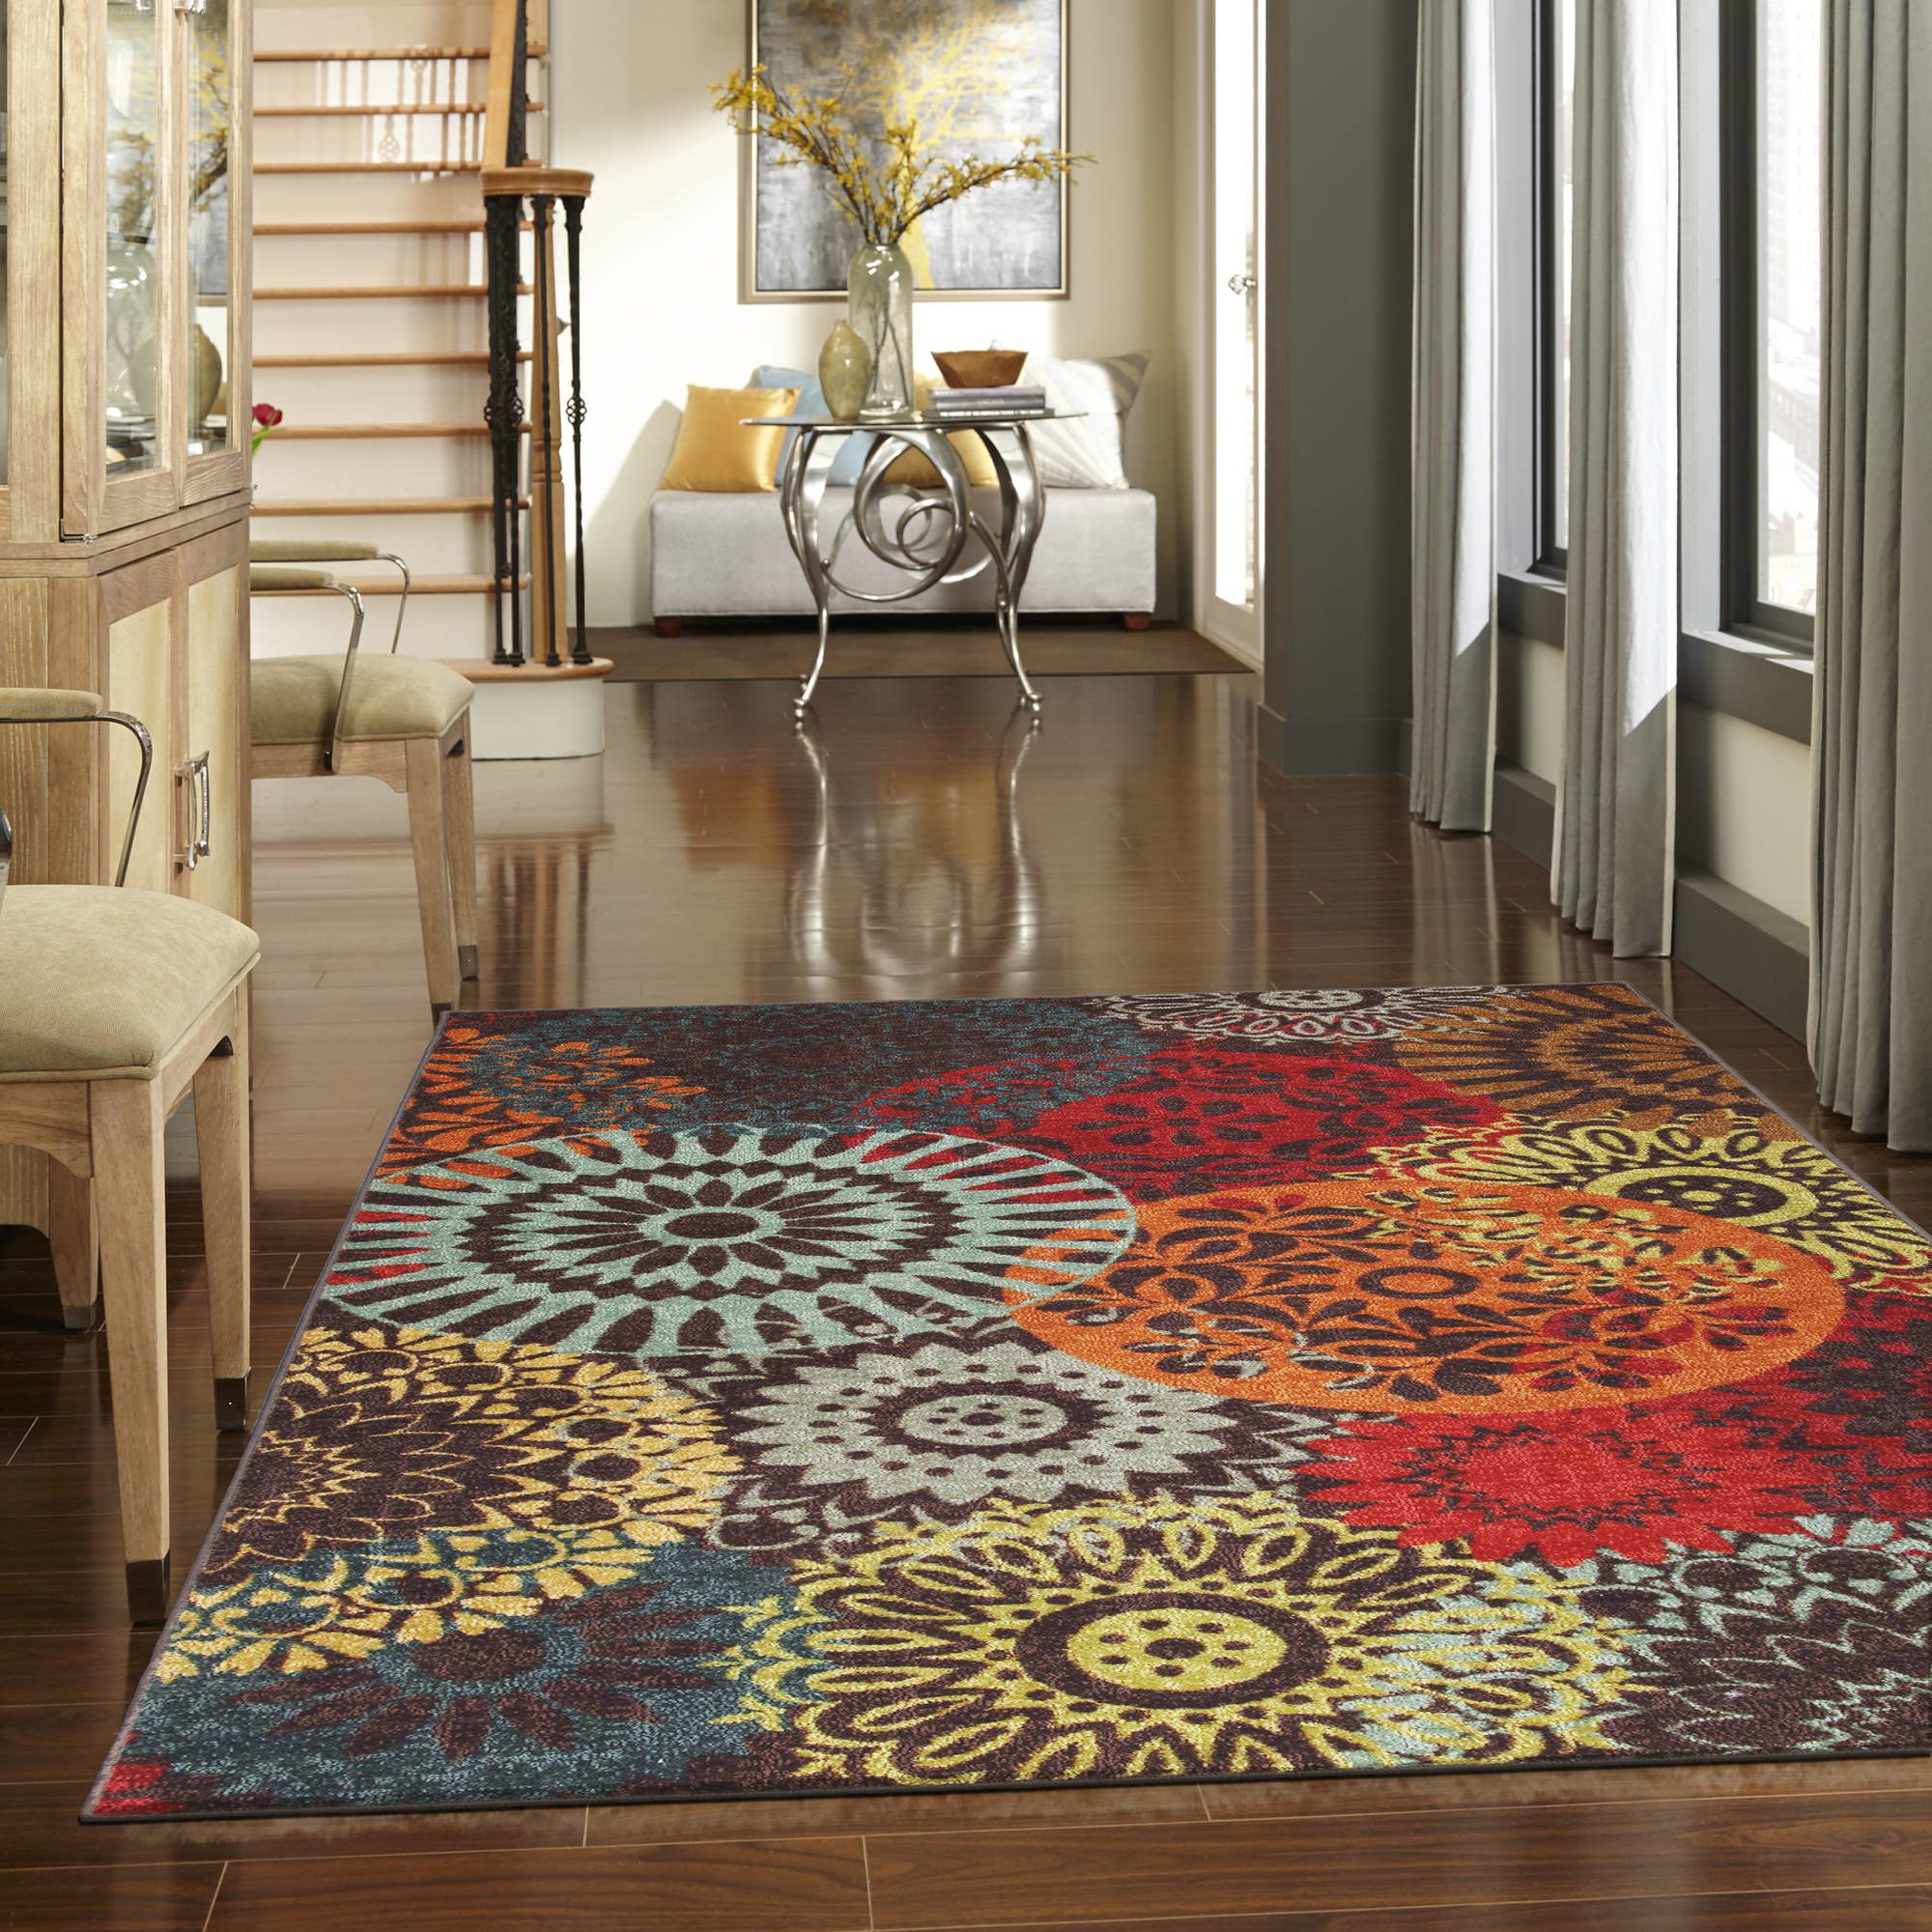 The colorful rug in a sitting area